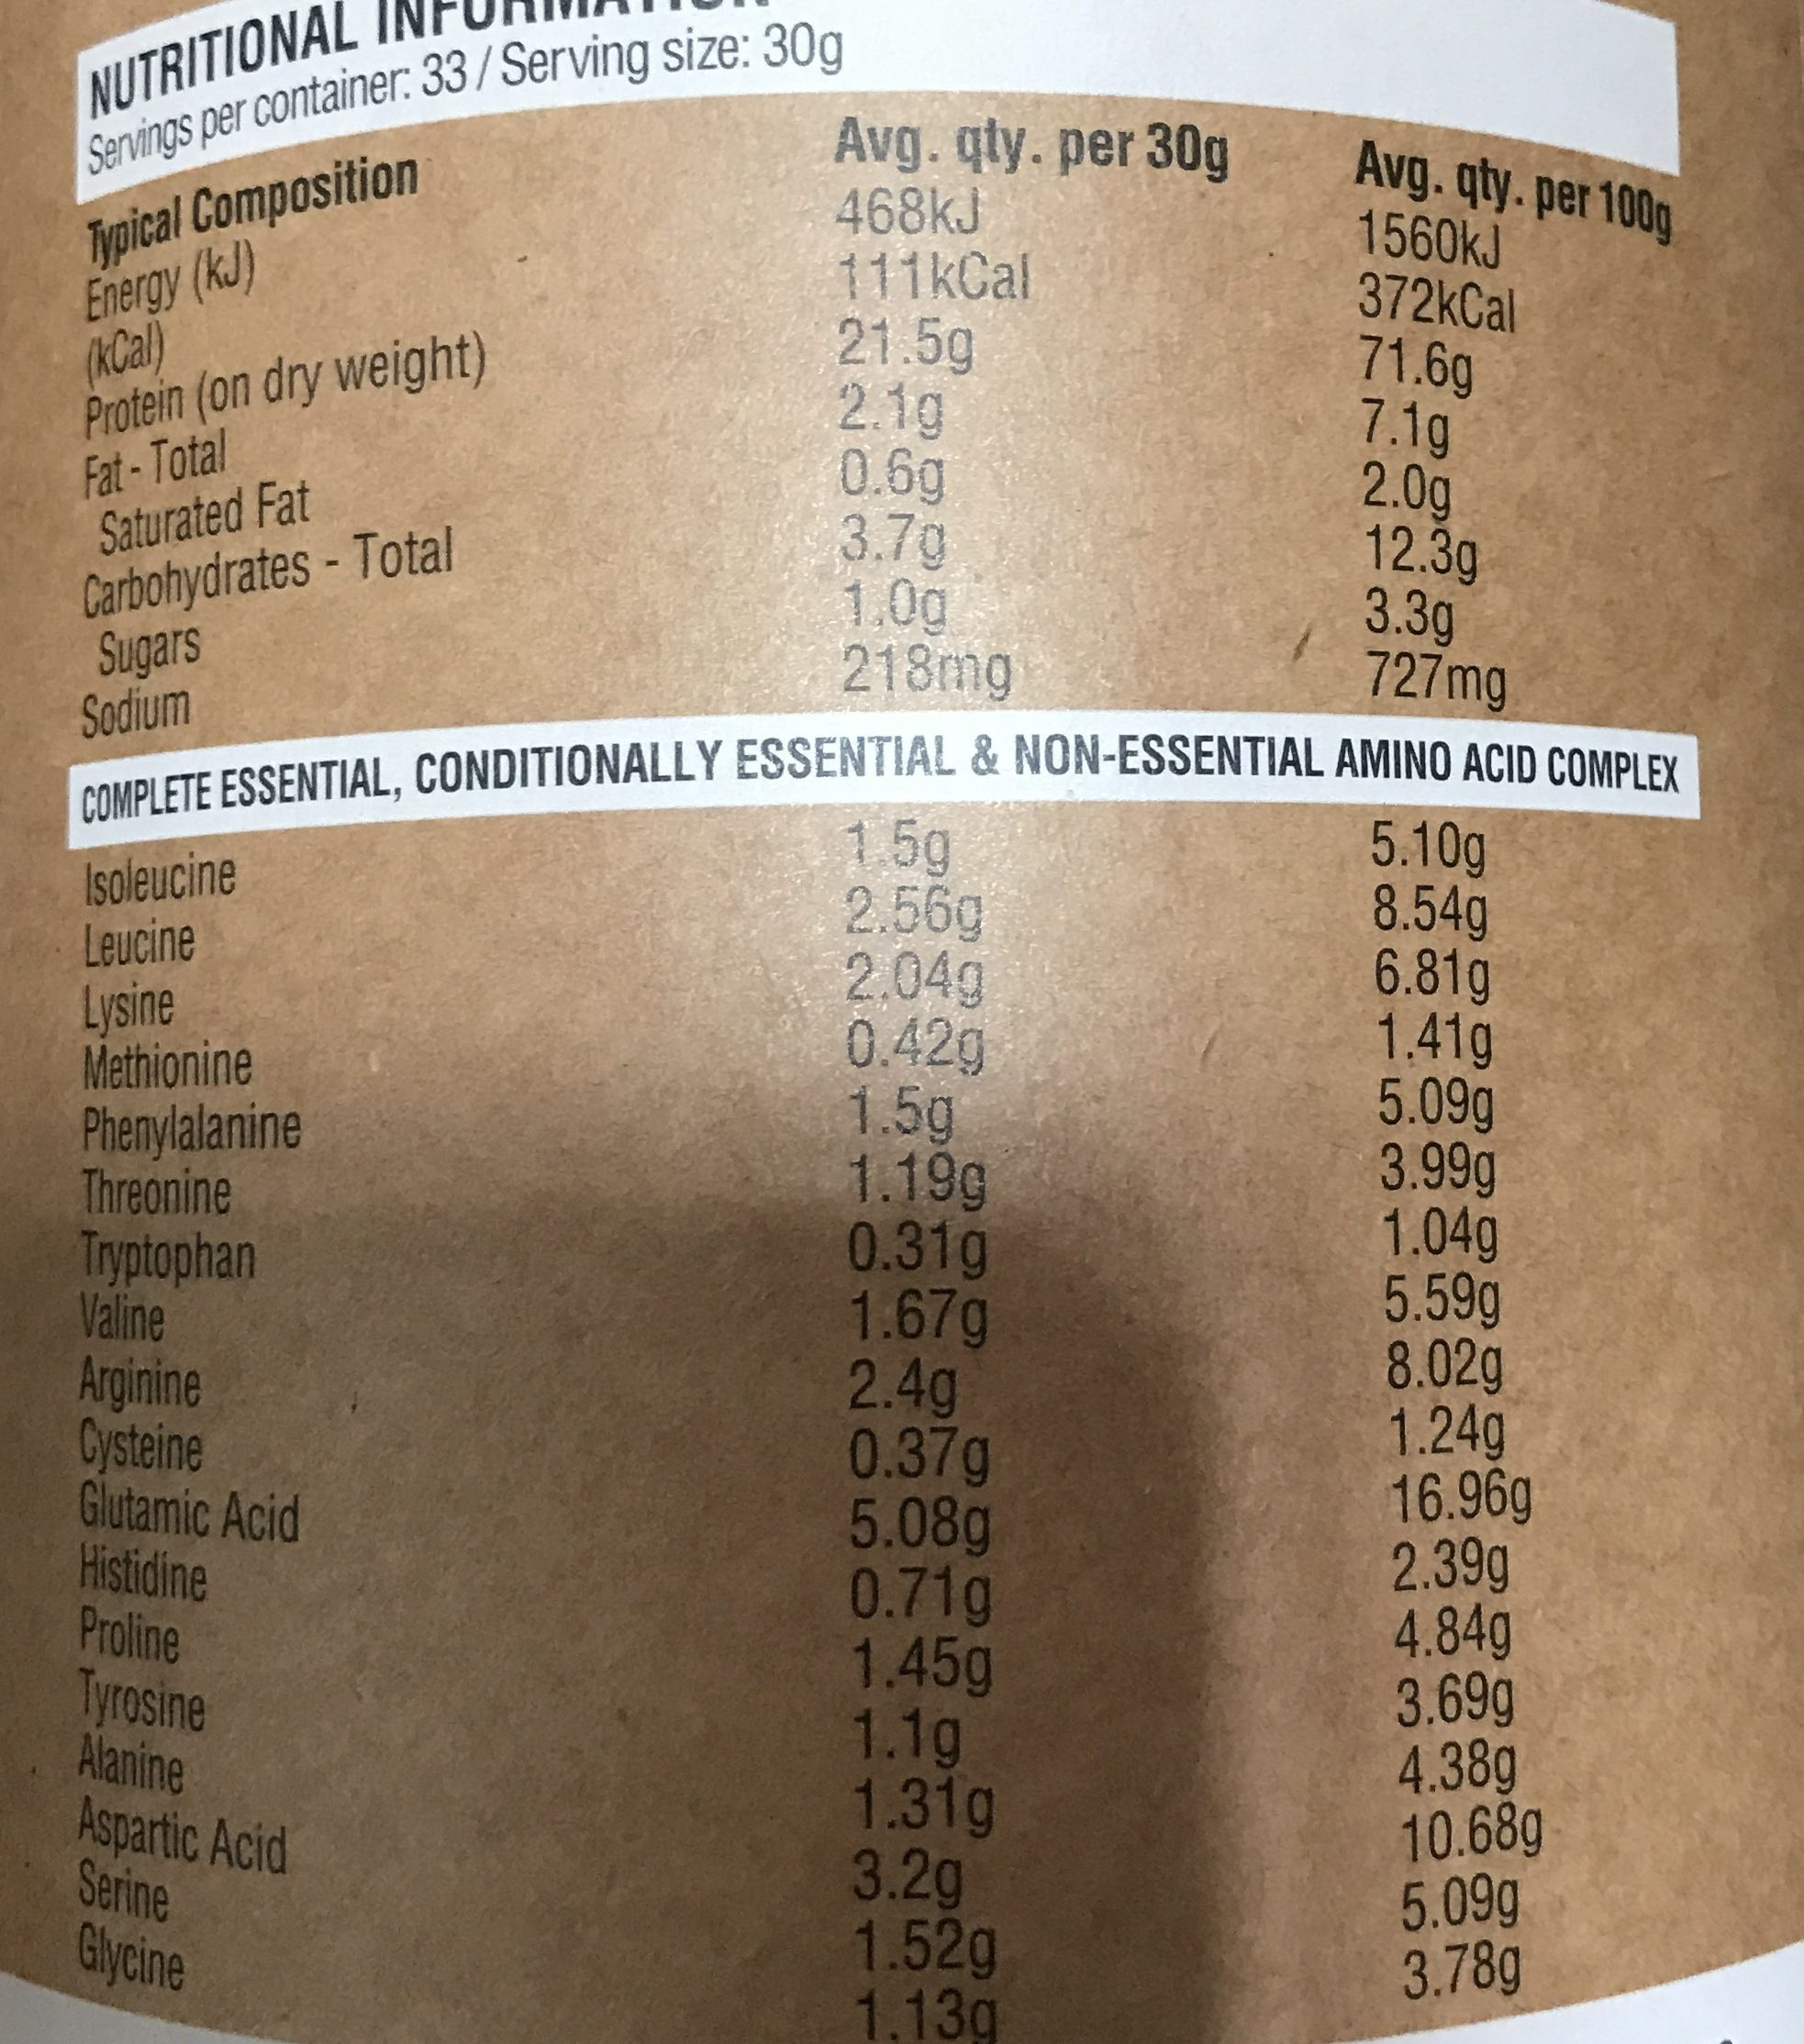 Amazonia Raw Protein Isolate Cacao & Coconut - Nutrition facts - fr